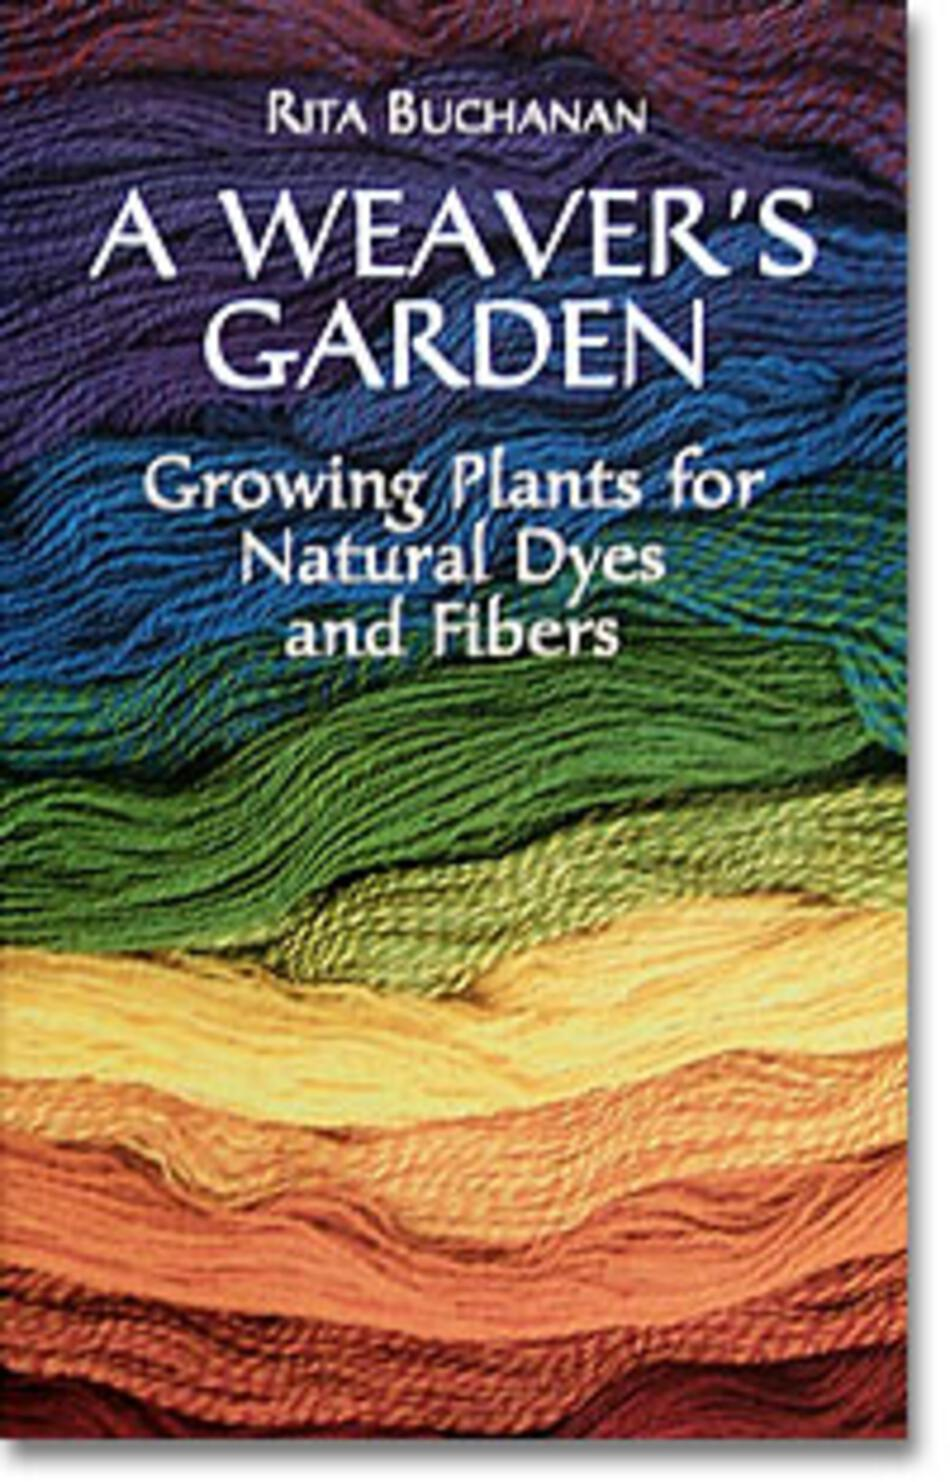 Dyeing Books A Weaveraposs Garden Growing Plants for Natural Dyes and Fibers